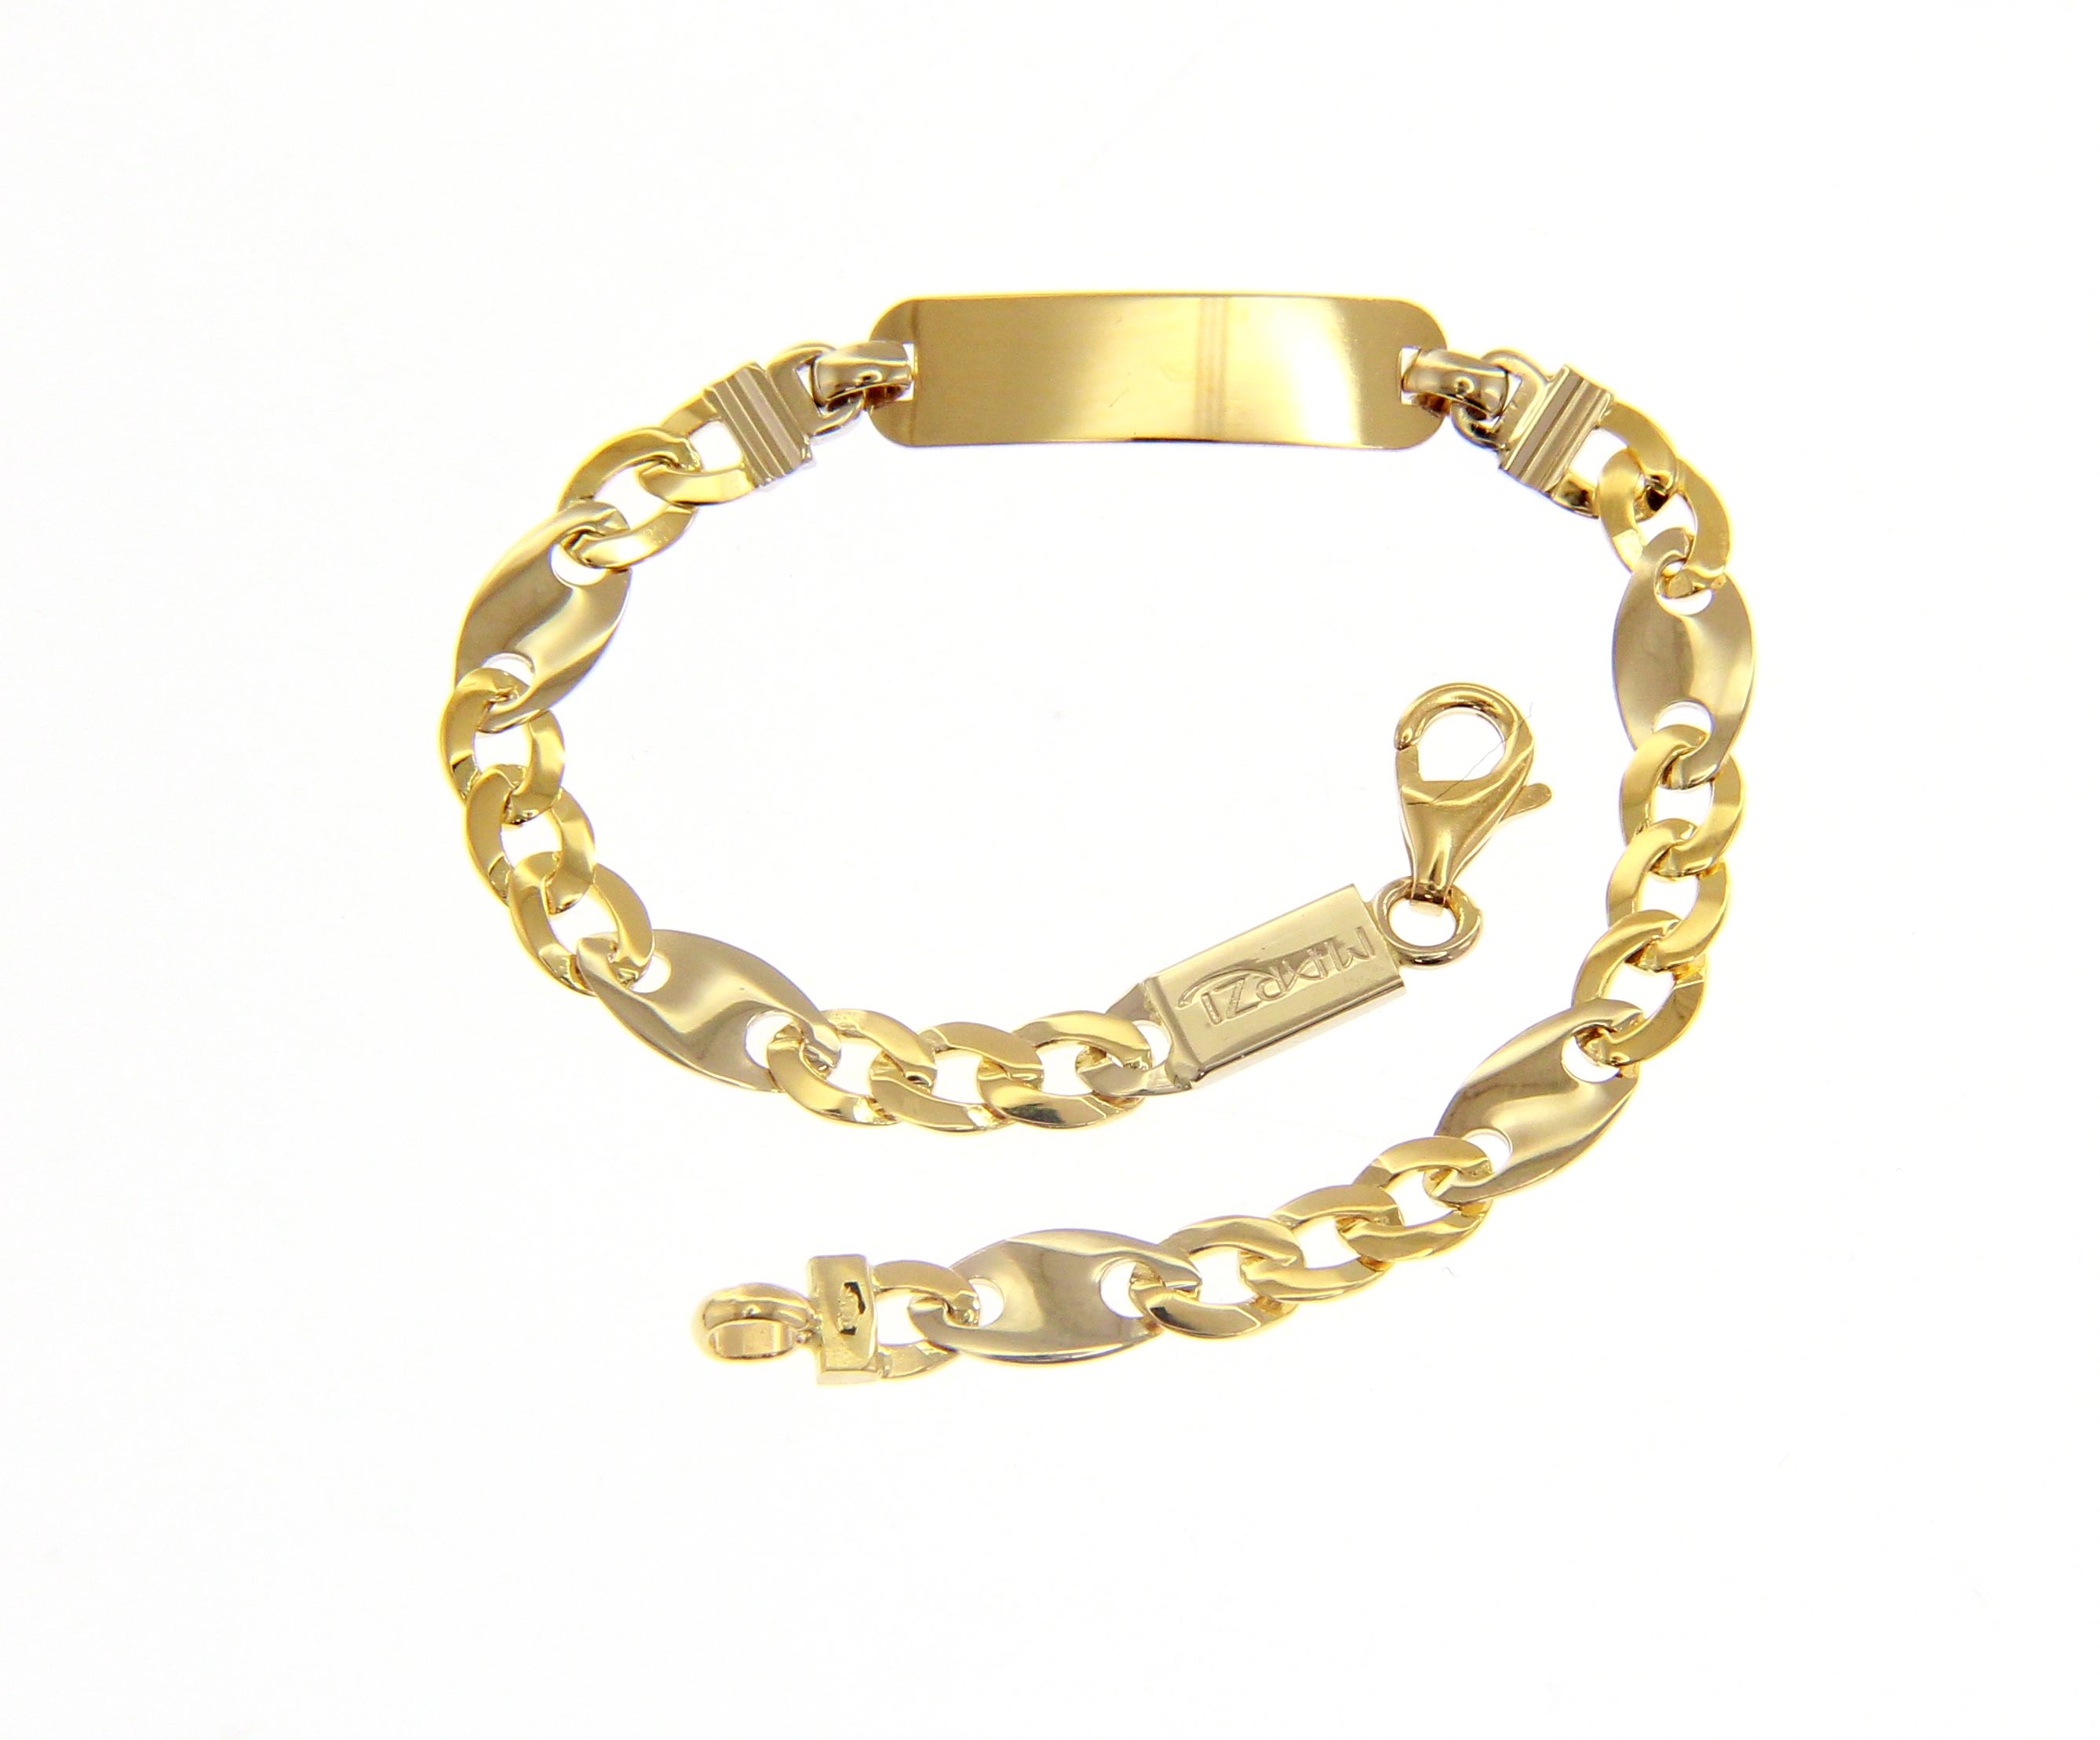 Beautiful 18ct Yellow And White Gold 14,5 cm Bracelet